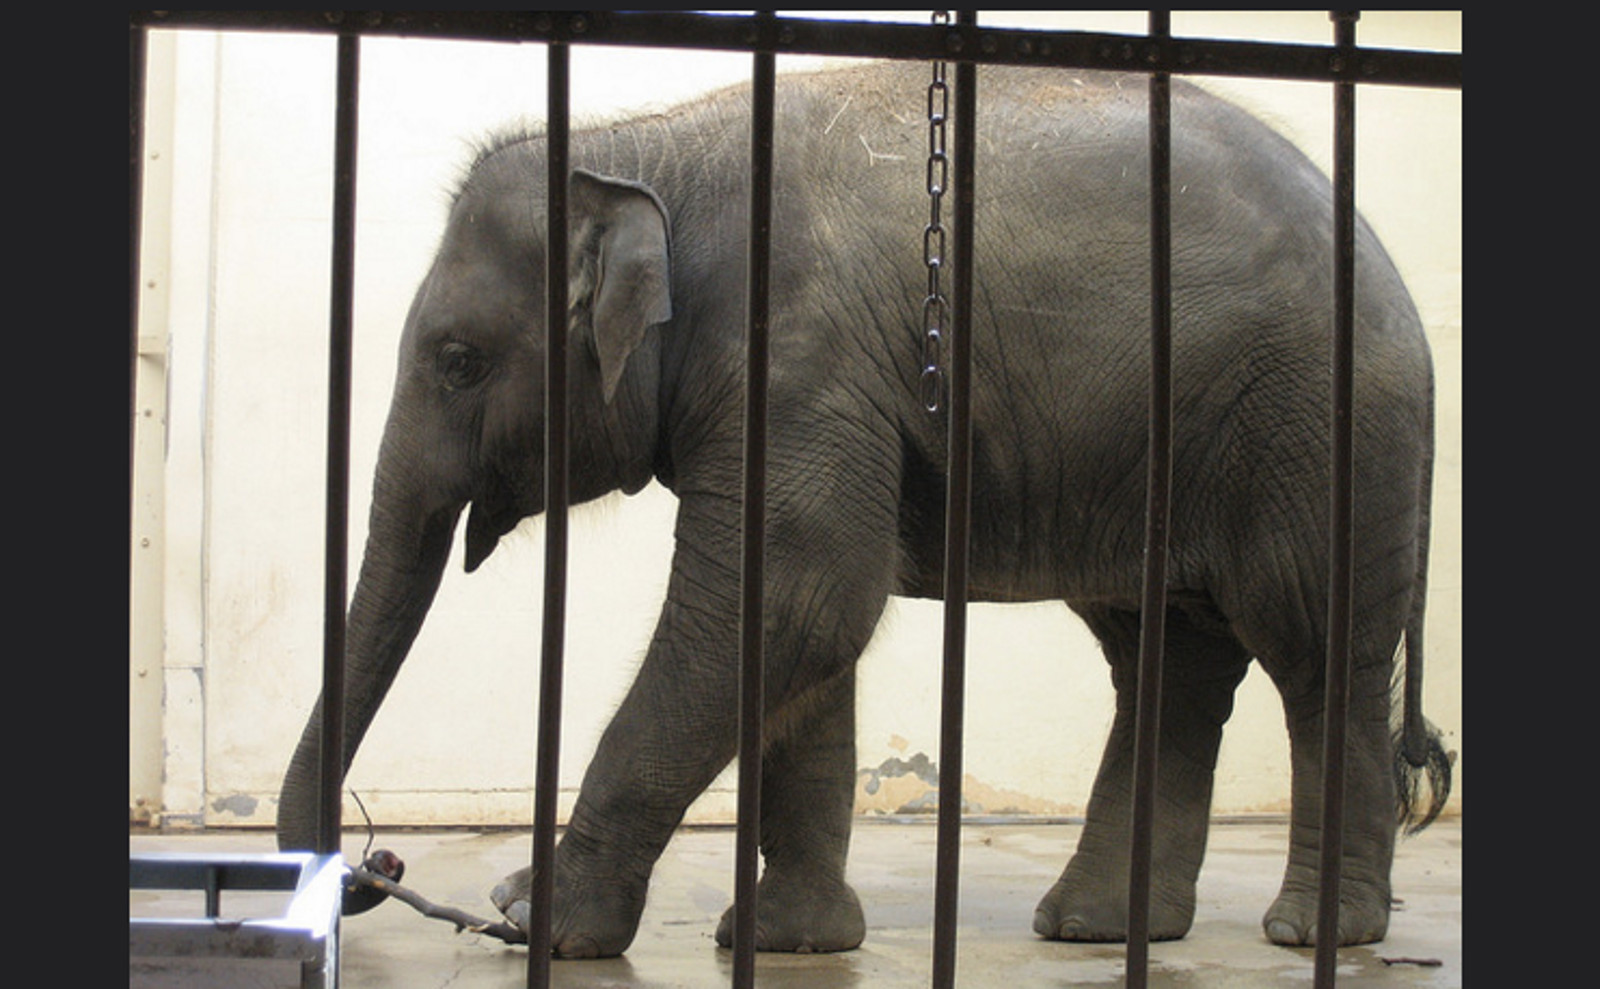 Elephants Will Never Belong In Zoos